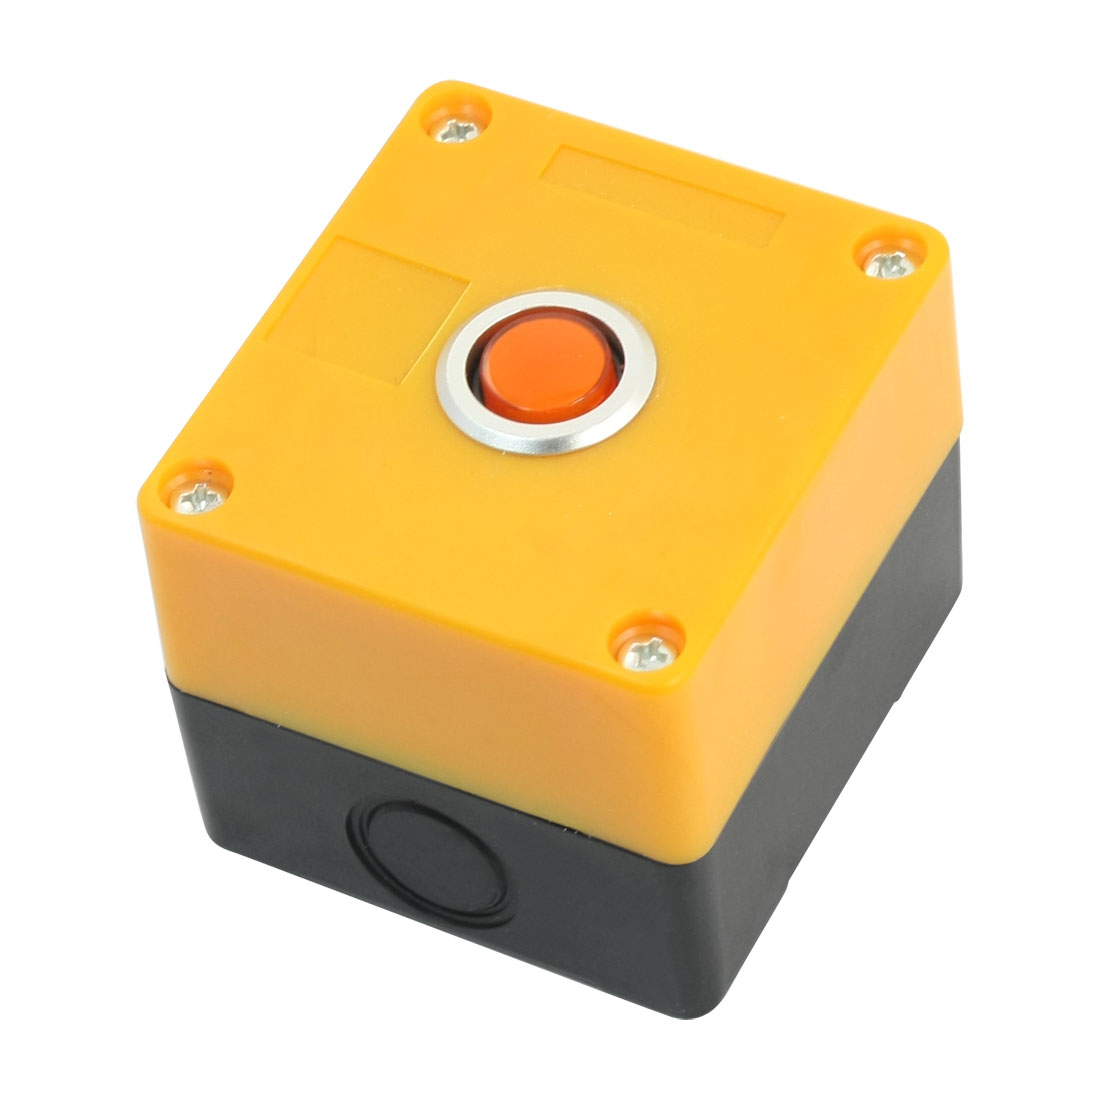 12V 15mm Dia Round Button 2-Terminals Rectangle Plastic Case Signal Indicator Light Pilot Lamp Blub Orange w Box